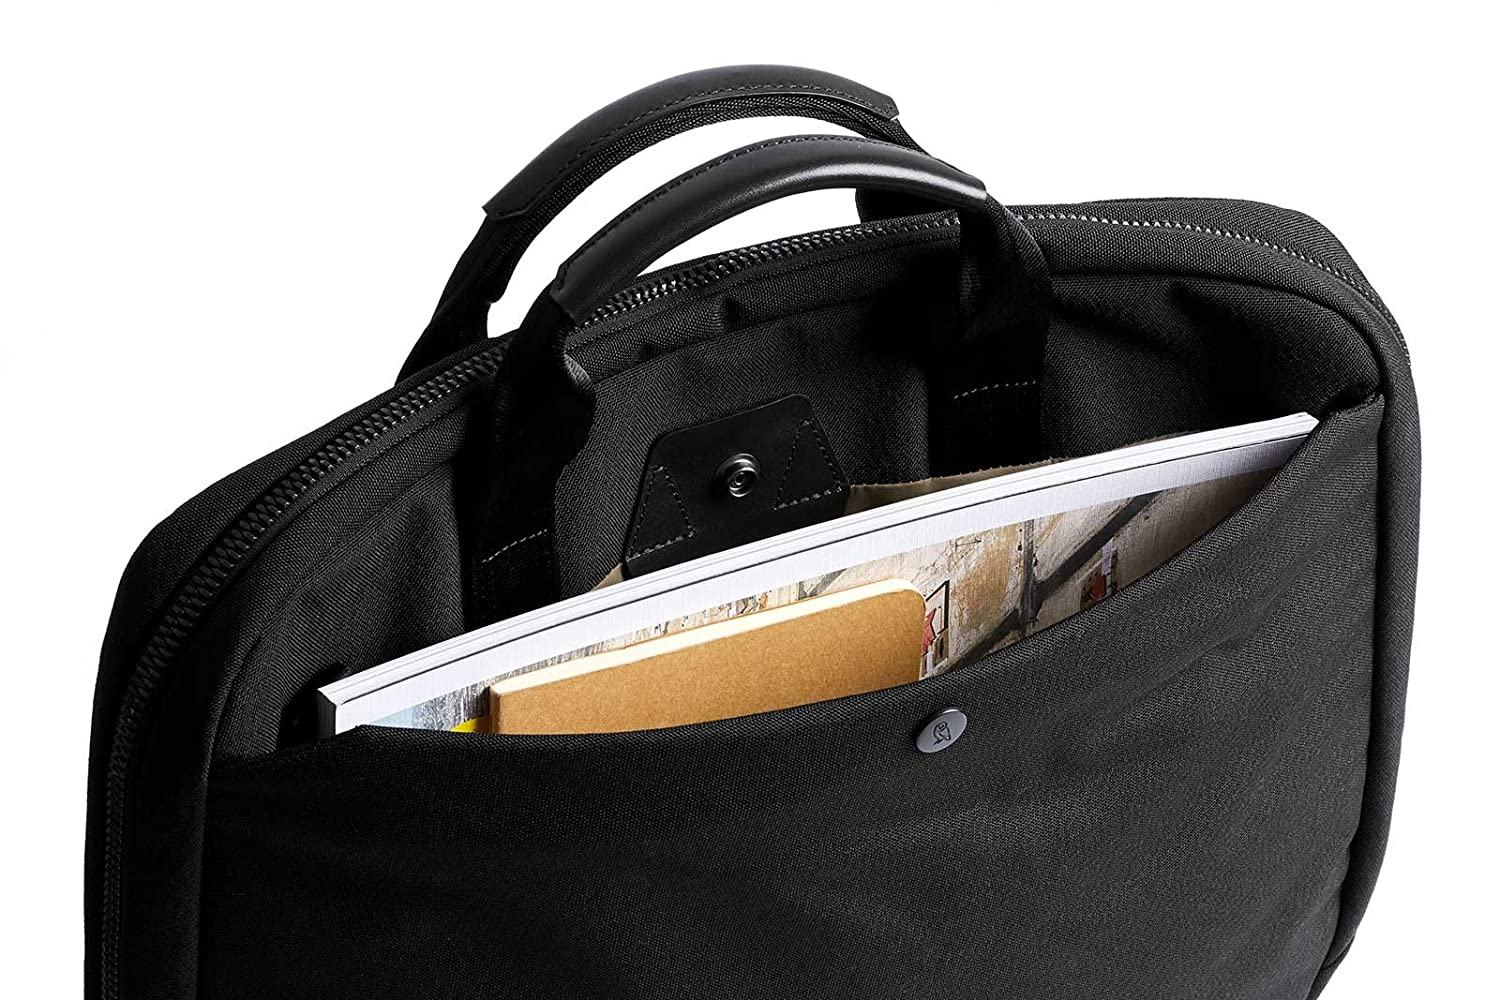 13 laptop, notes, cables, everyday essentials Moss woven laptop bag Bellroy Laptop Brief 13